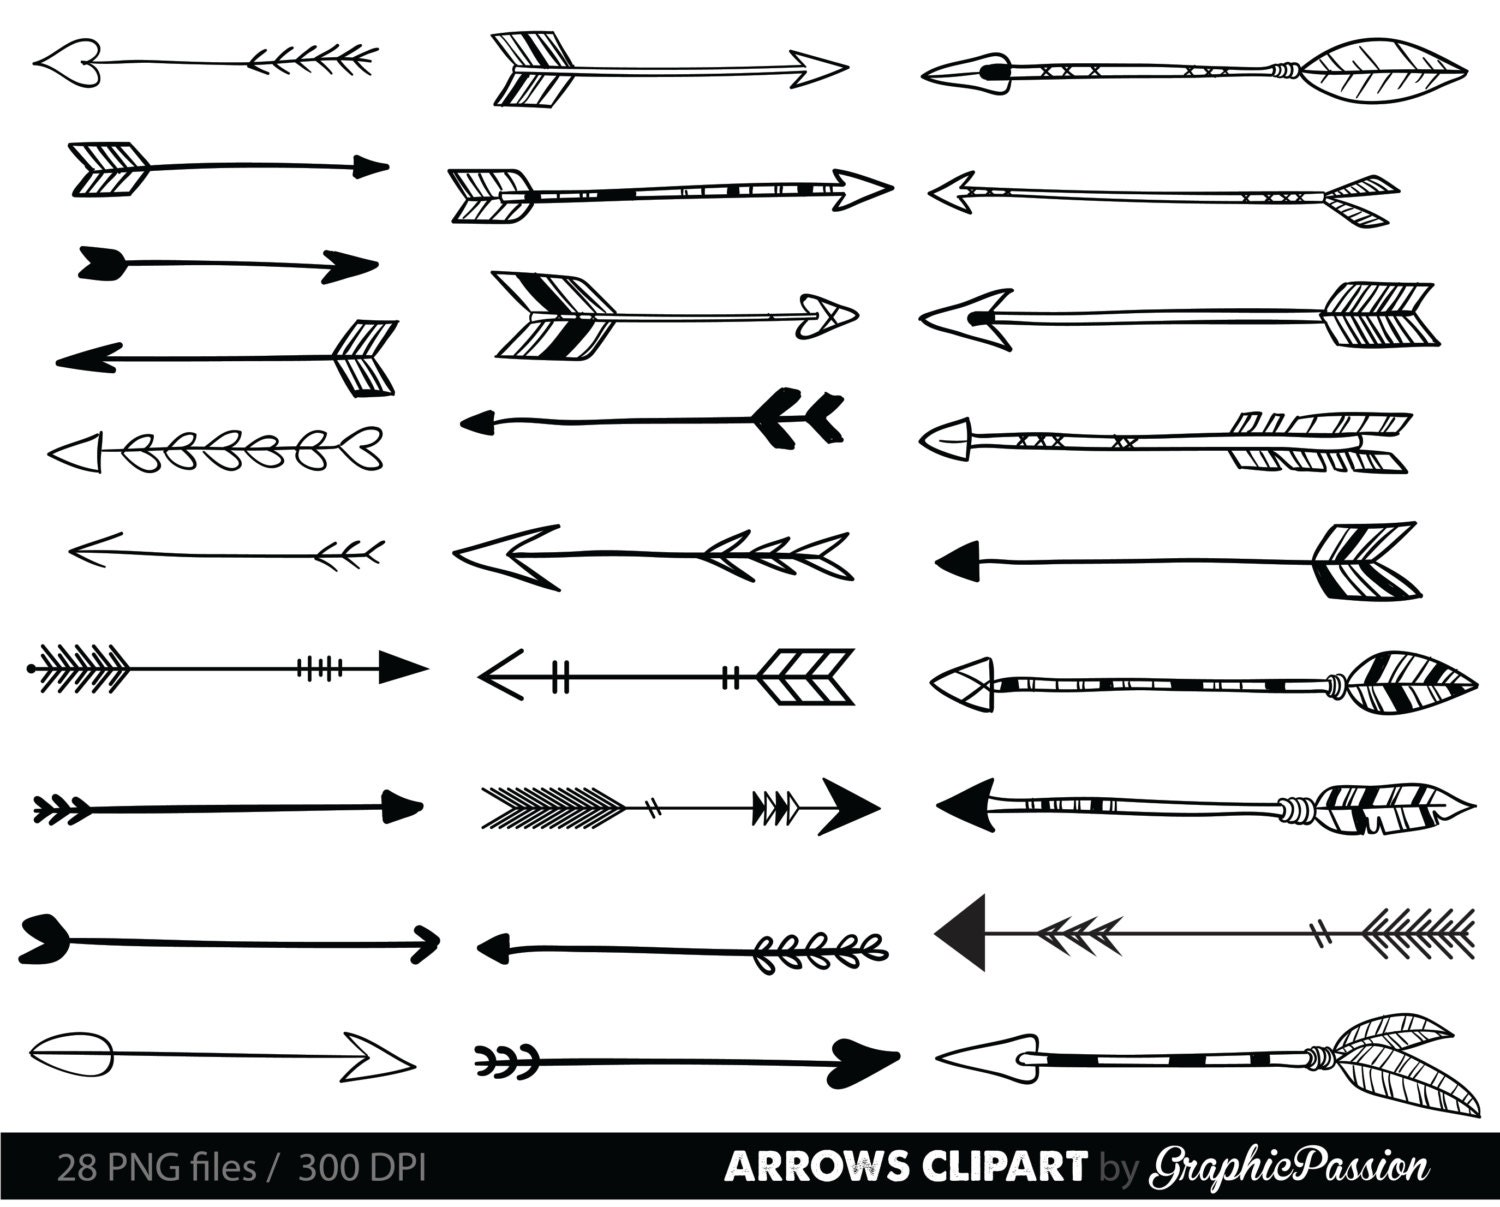 Clip Art Arrows Clip Art arrow clipart etsy arrows clip art tribal archery hand drawn doodle drawing digital instant download